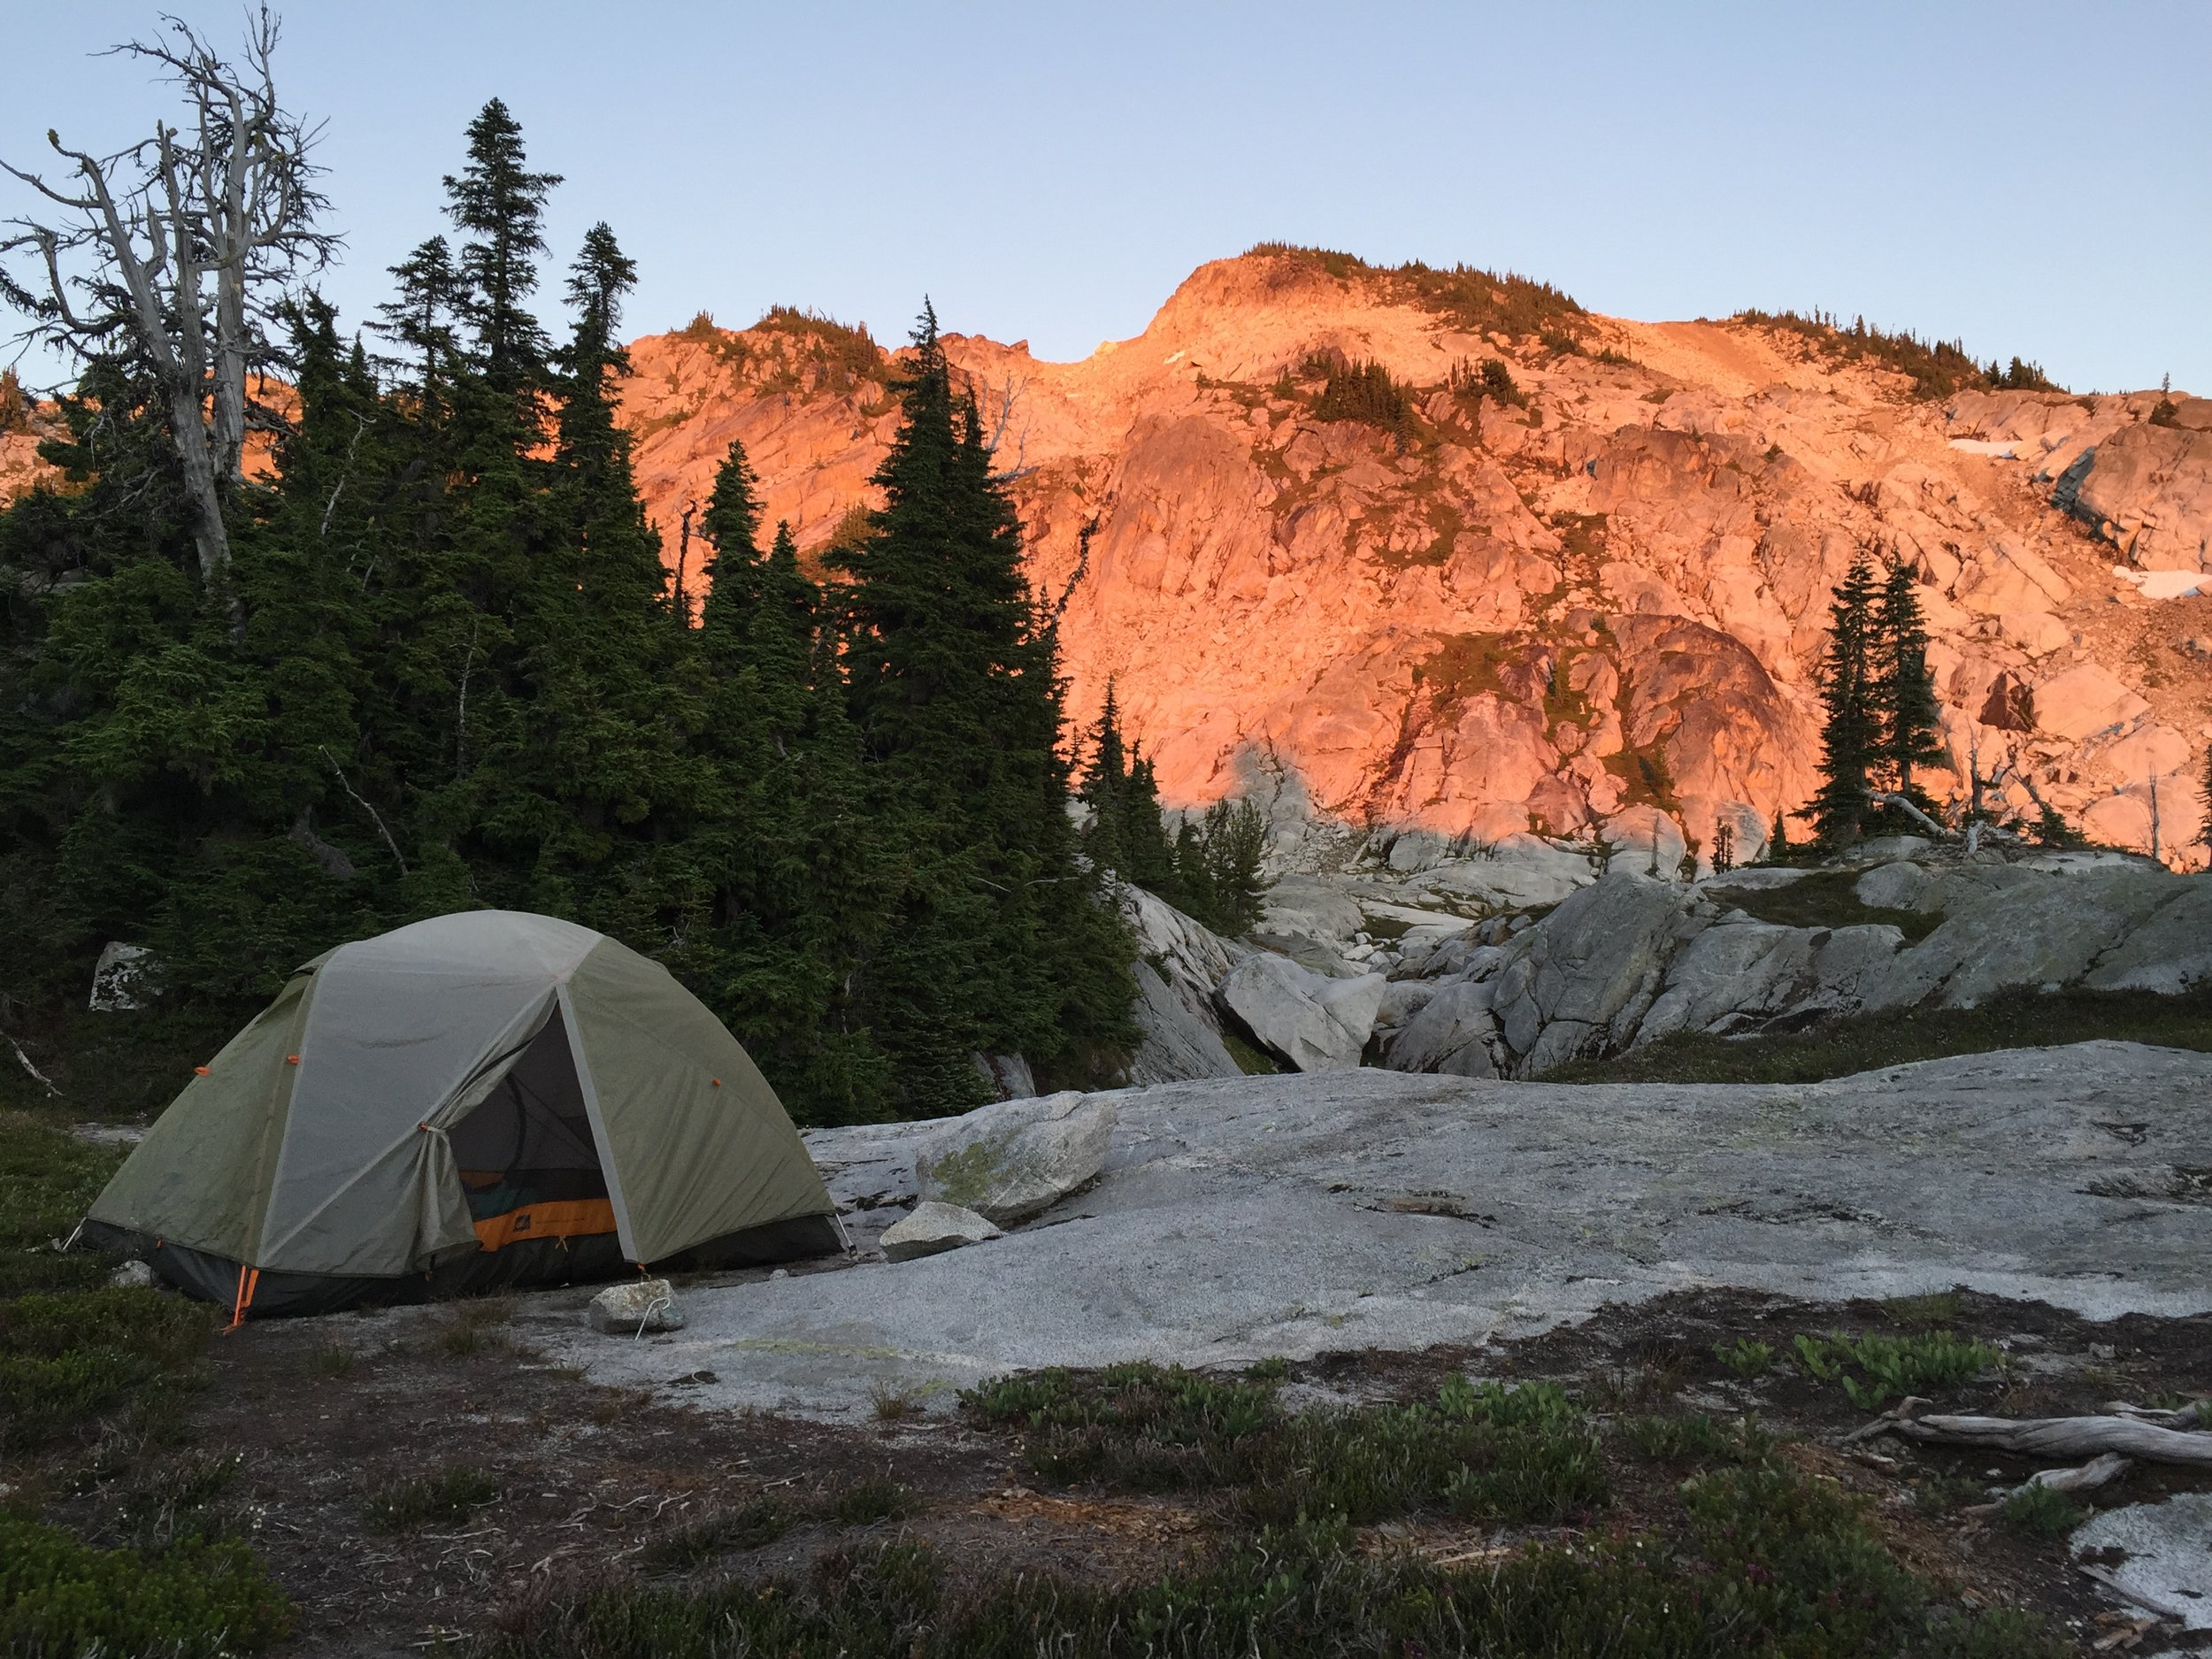 Our campsite in the Okanogan-Wenatchee National Forest